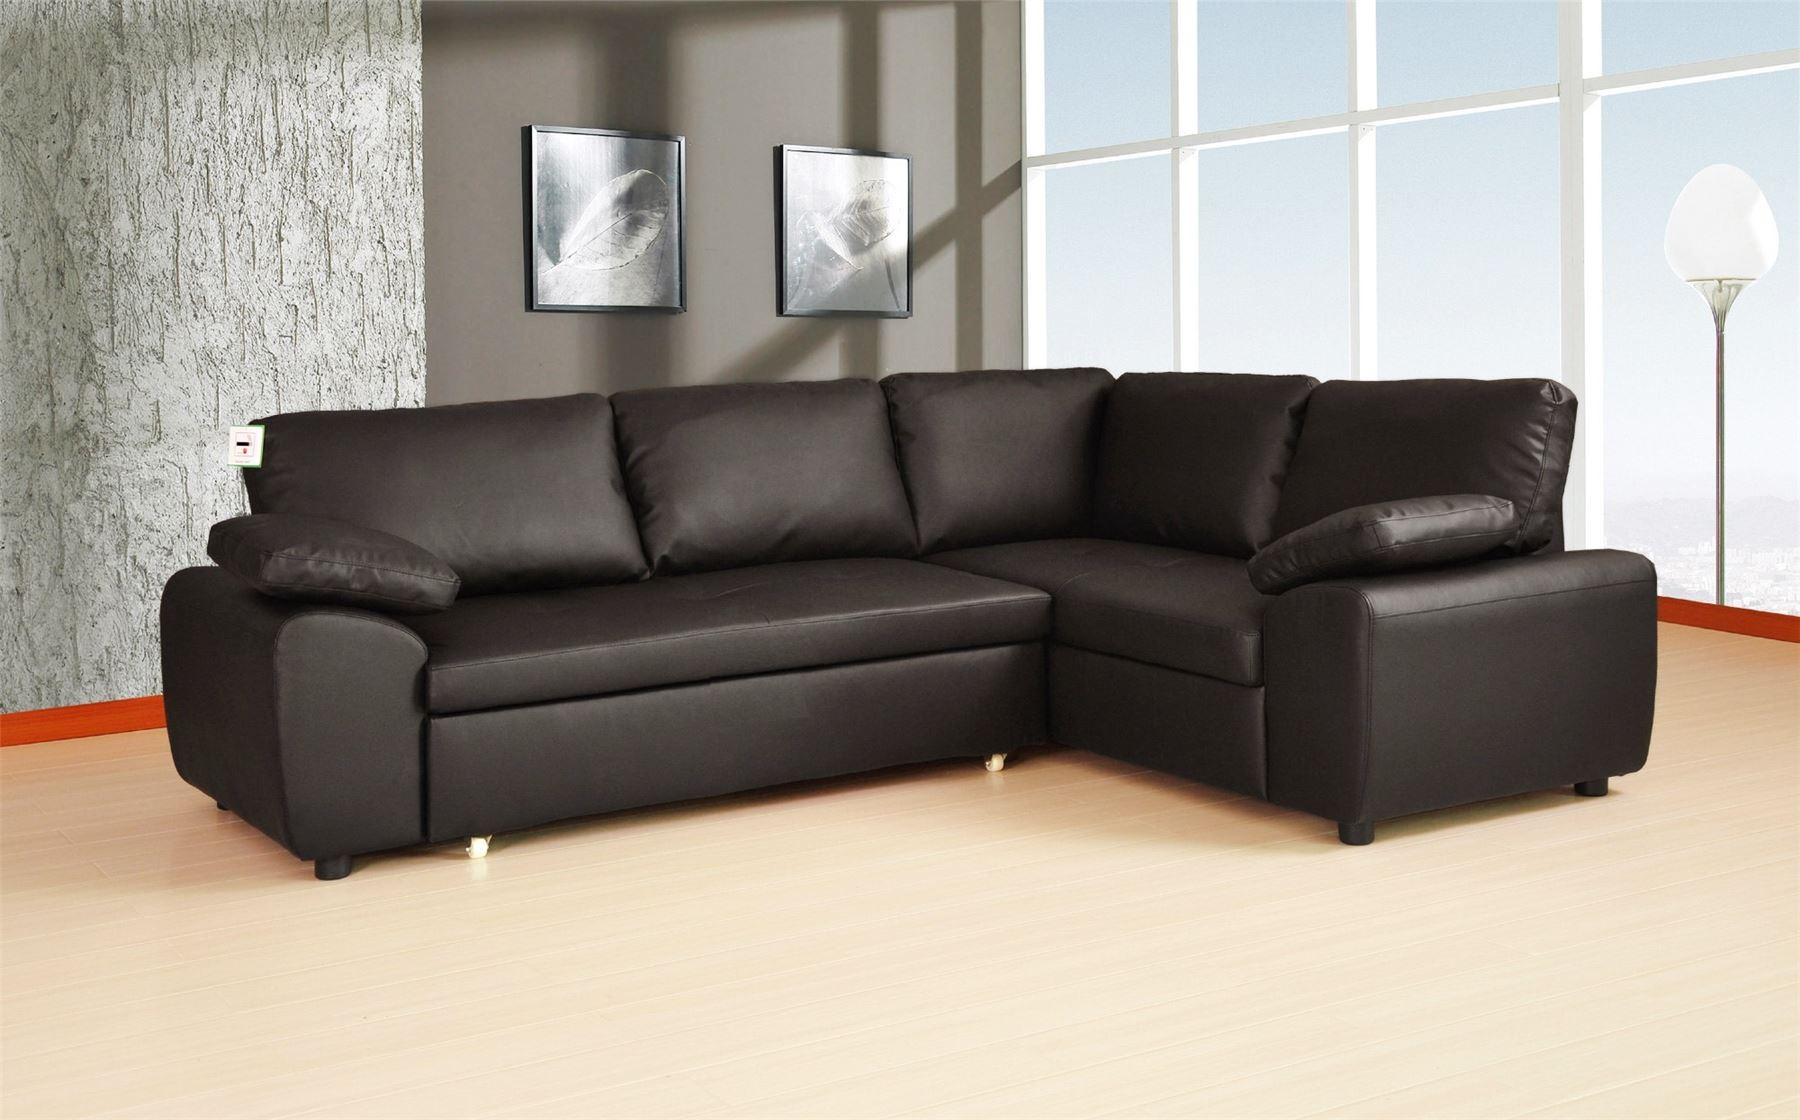 Decorate Your Home With Black Leather Corner Sofa - Black leather corner sofa